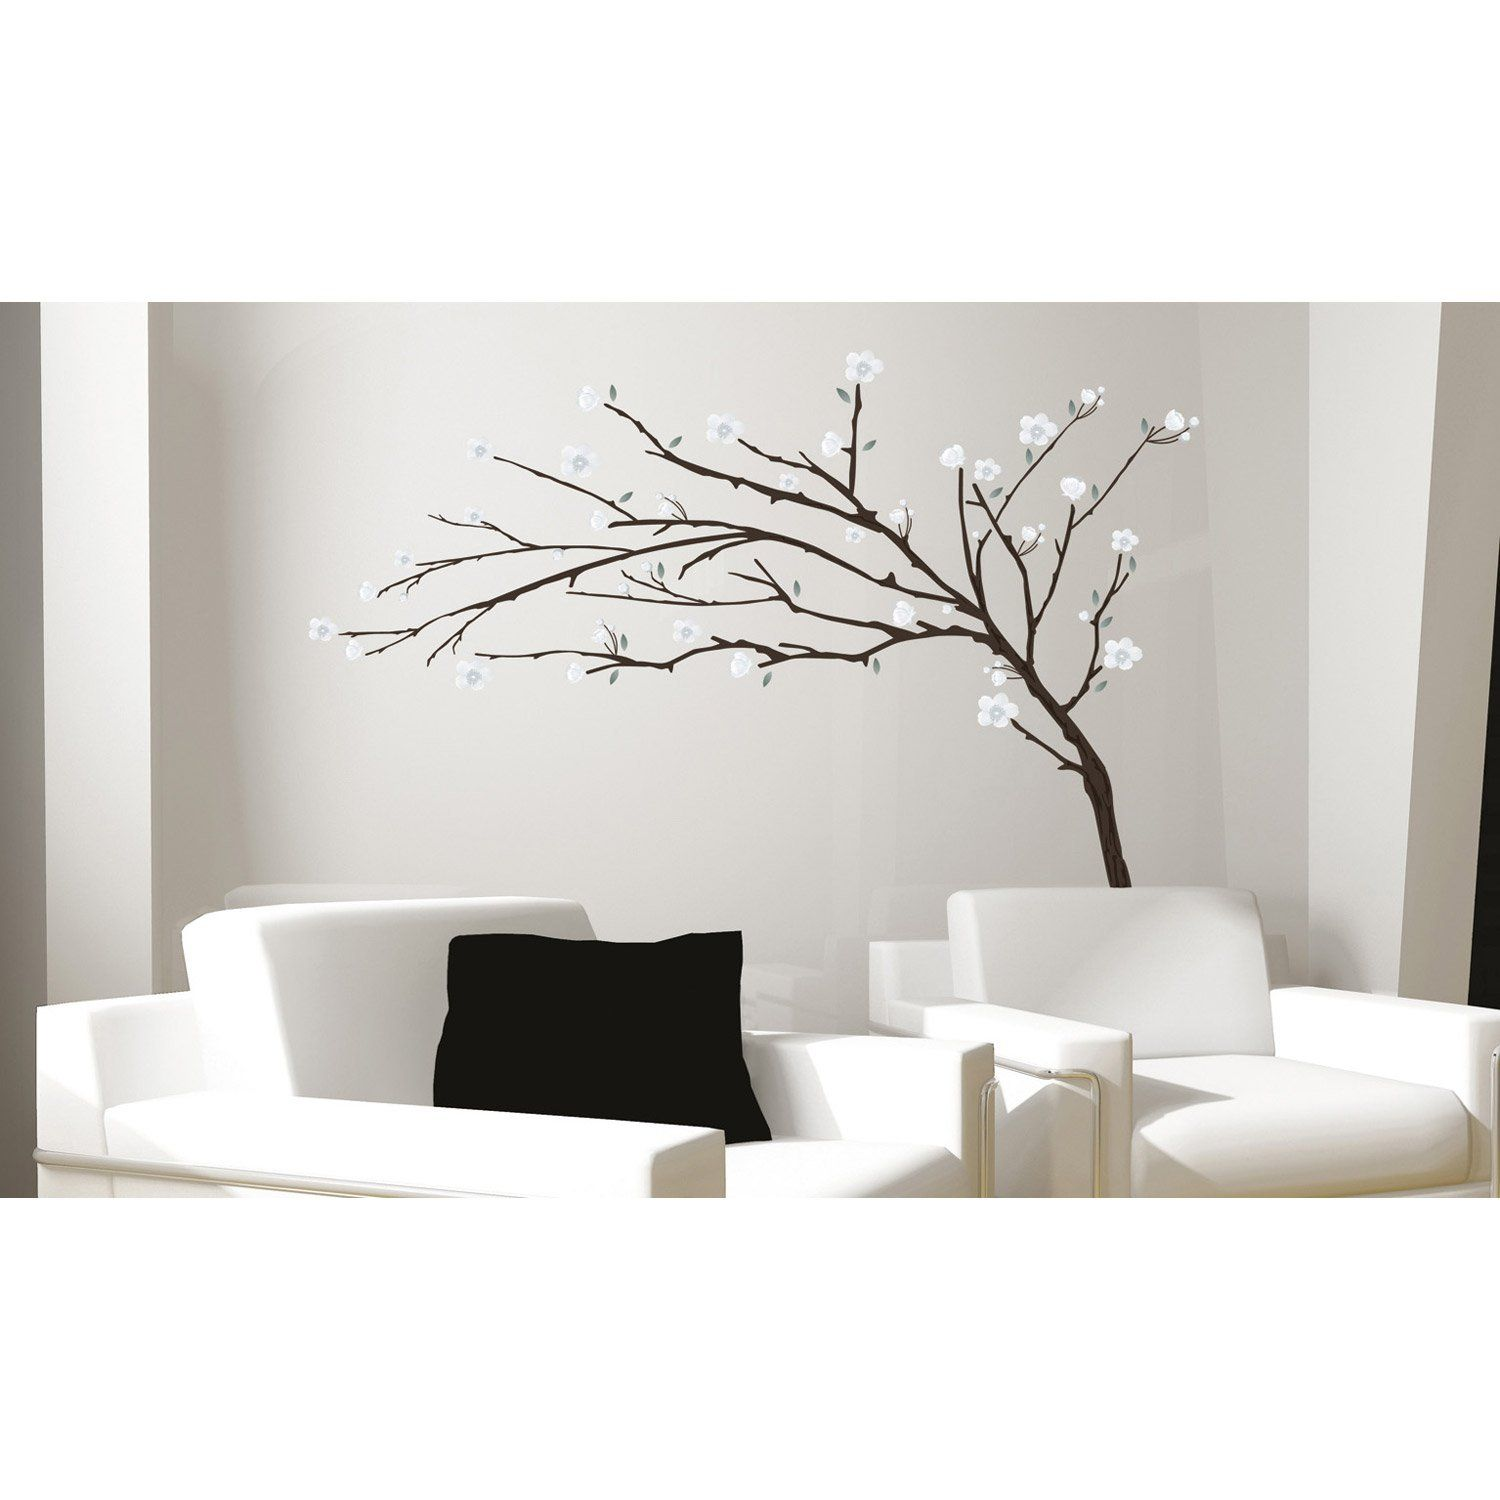 Sticker branche design 50 x 70 cm leroy merlin - Sticker mural leroy merlin ...